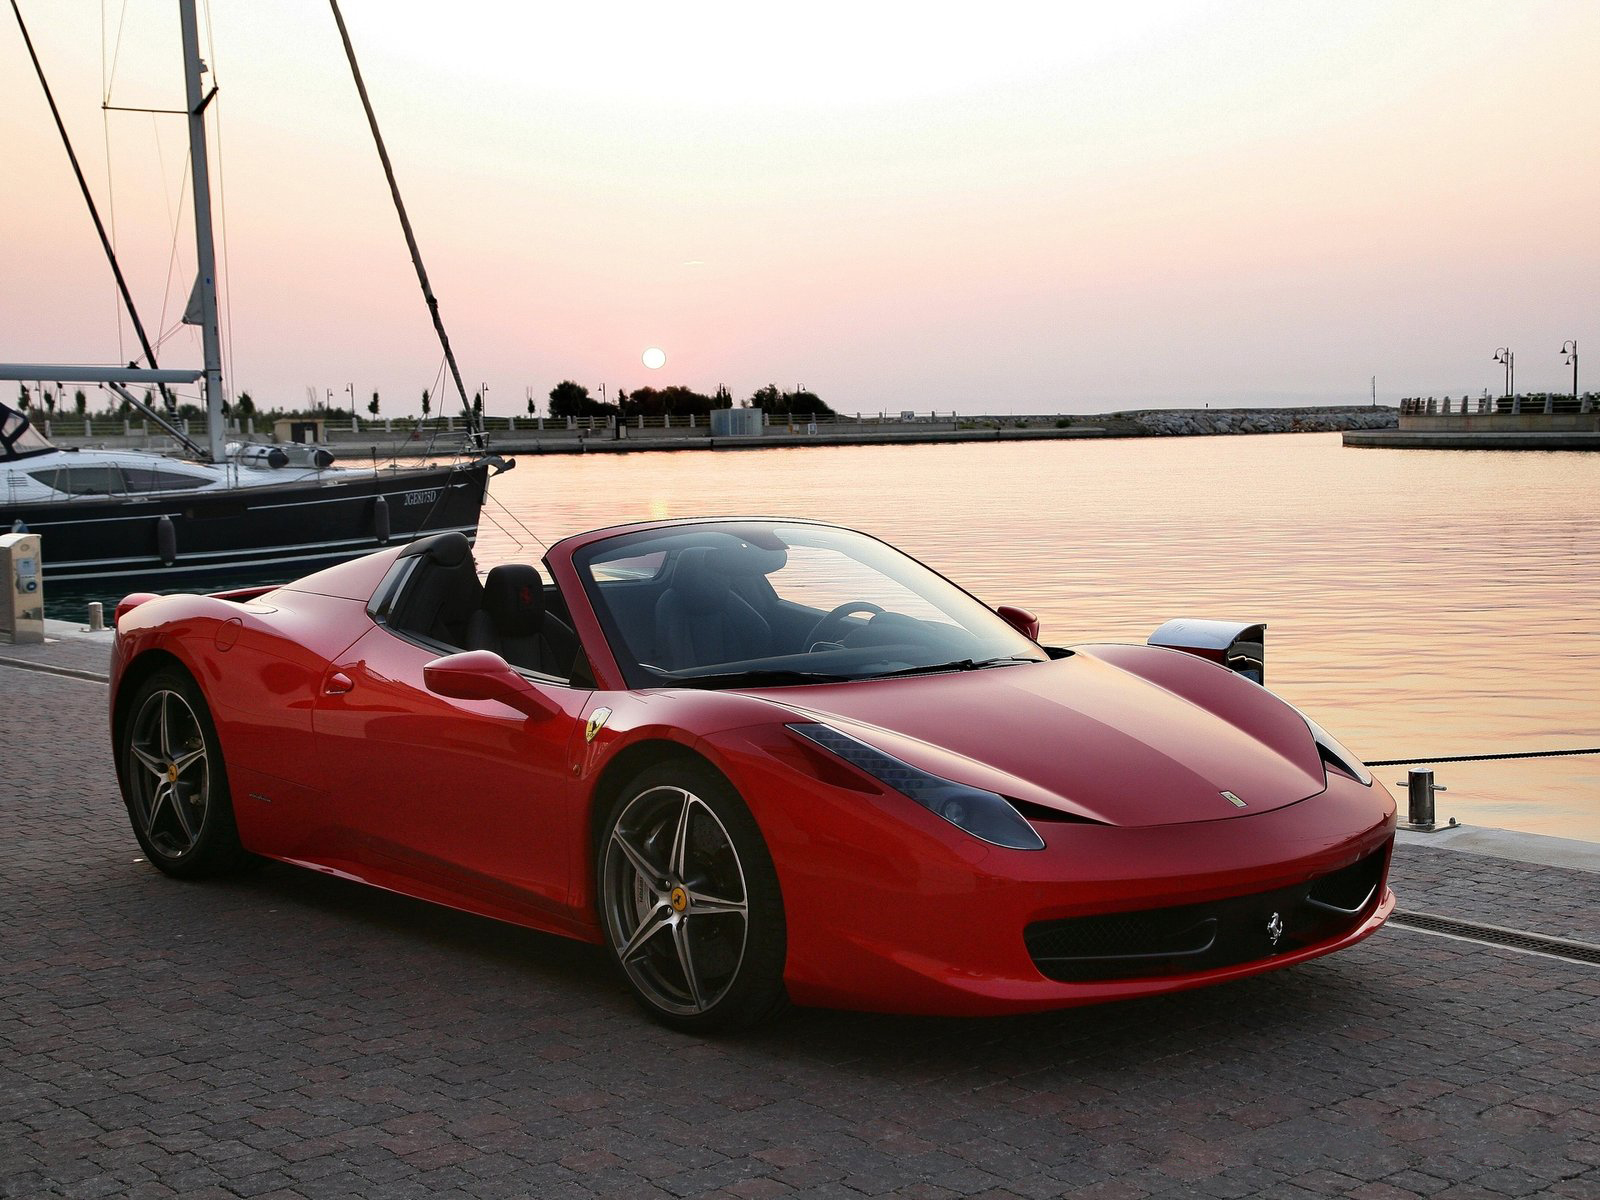 ferrari 458 spider 12 high quality ferrari 458 spider pictures on. Black Bedroom Furniture Sets. Home Design Ideas